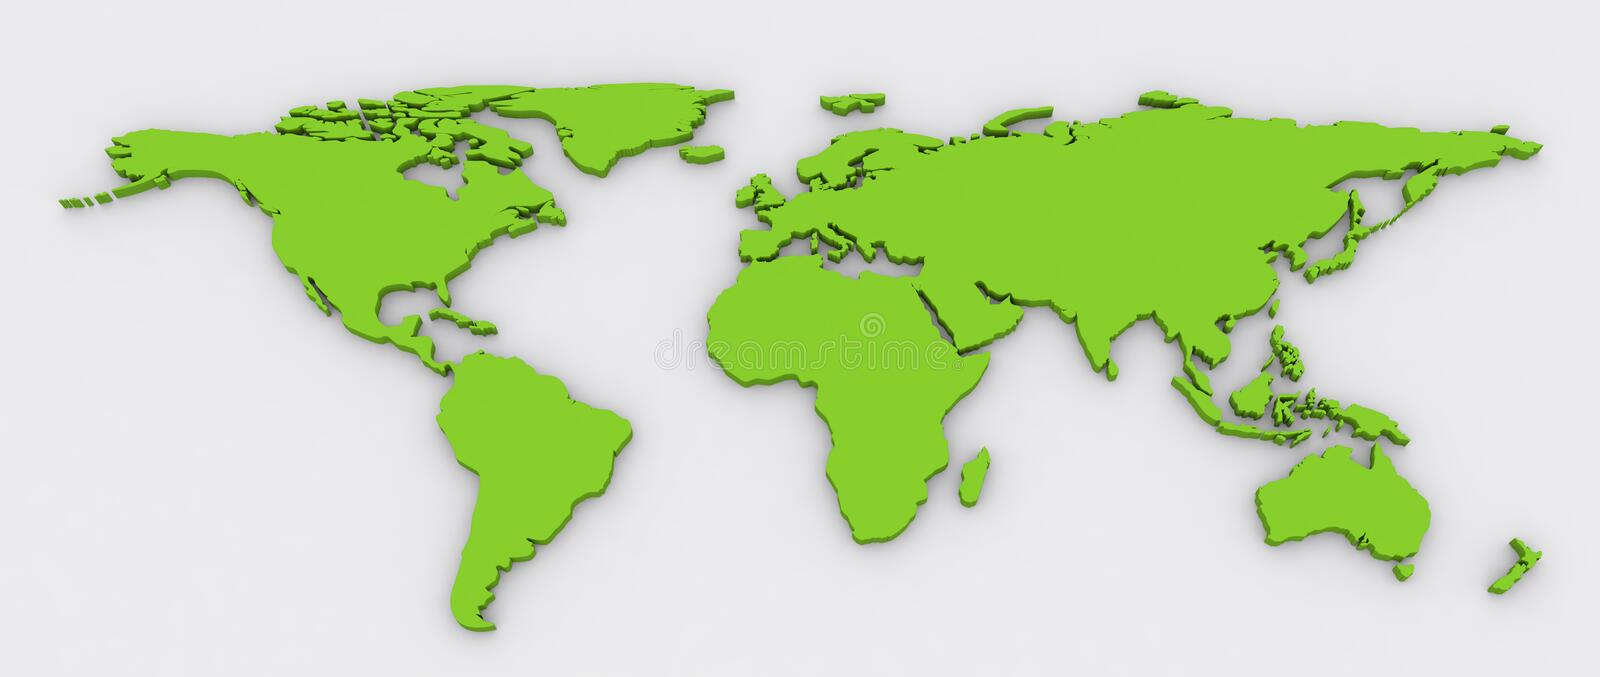 Green colour 3d extruded world map stock illustration download green colour 3d extruded world map stock illustration illustration of grey asia gumiabroncs Gallery